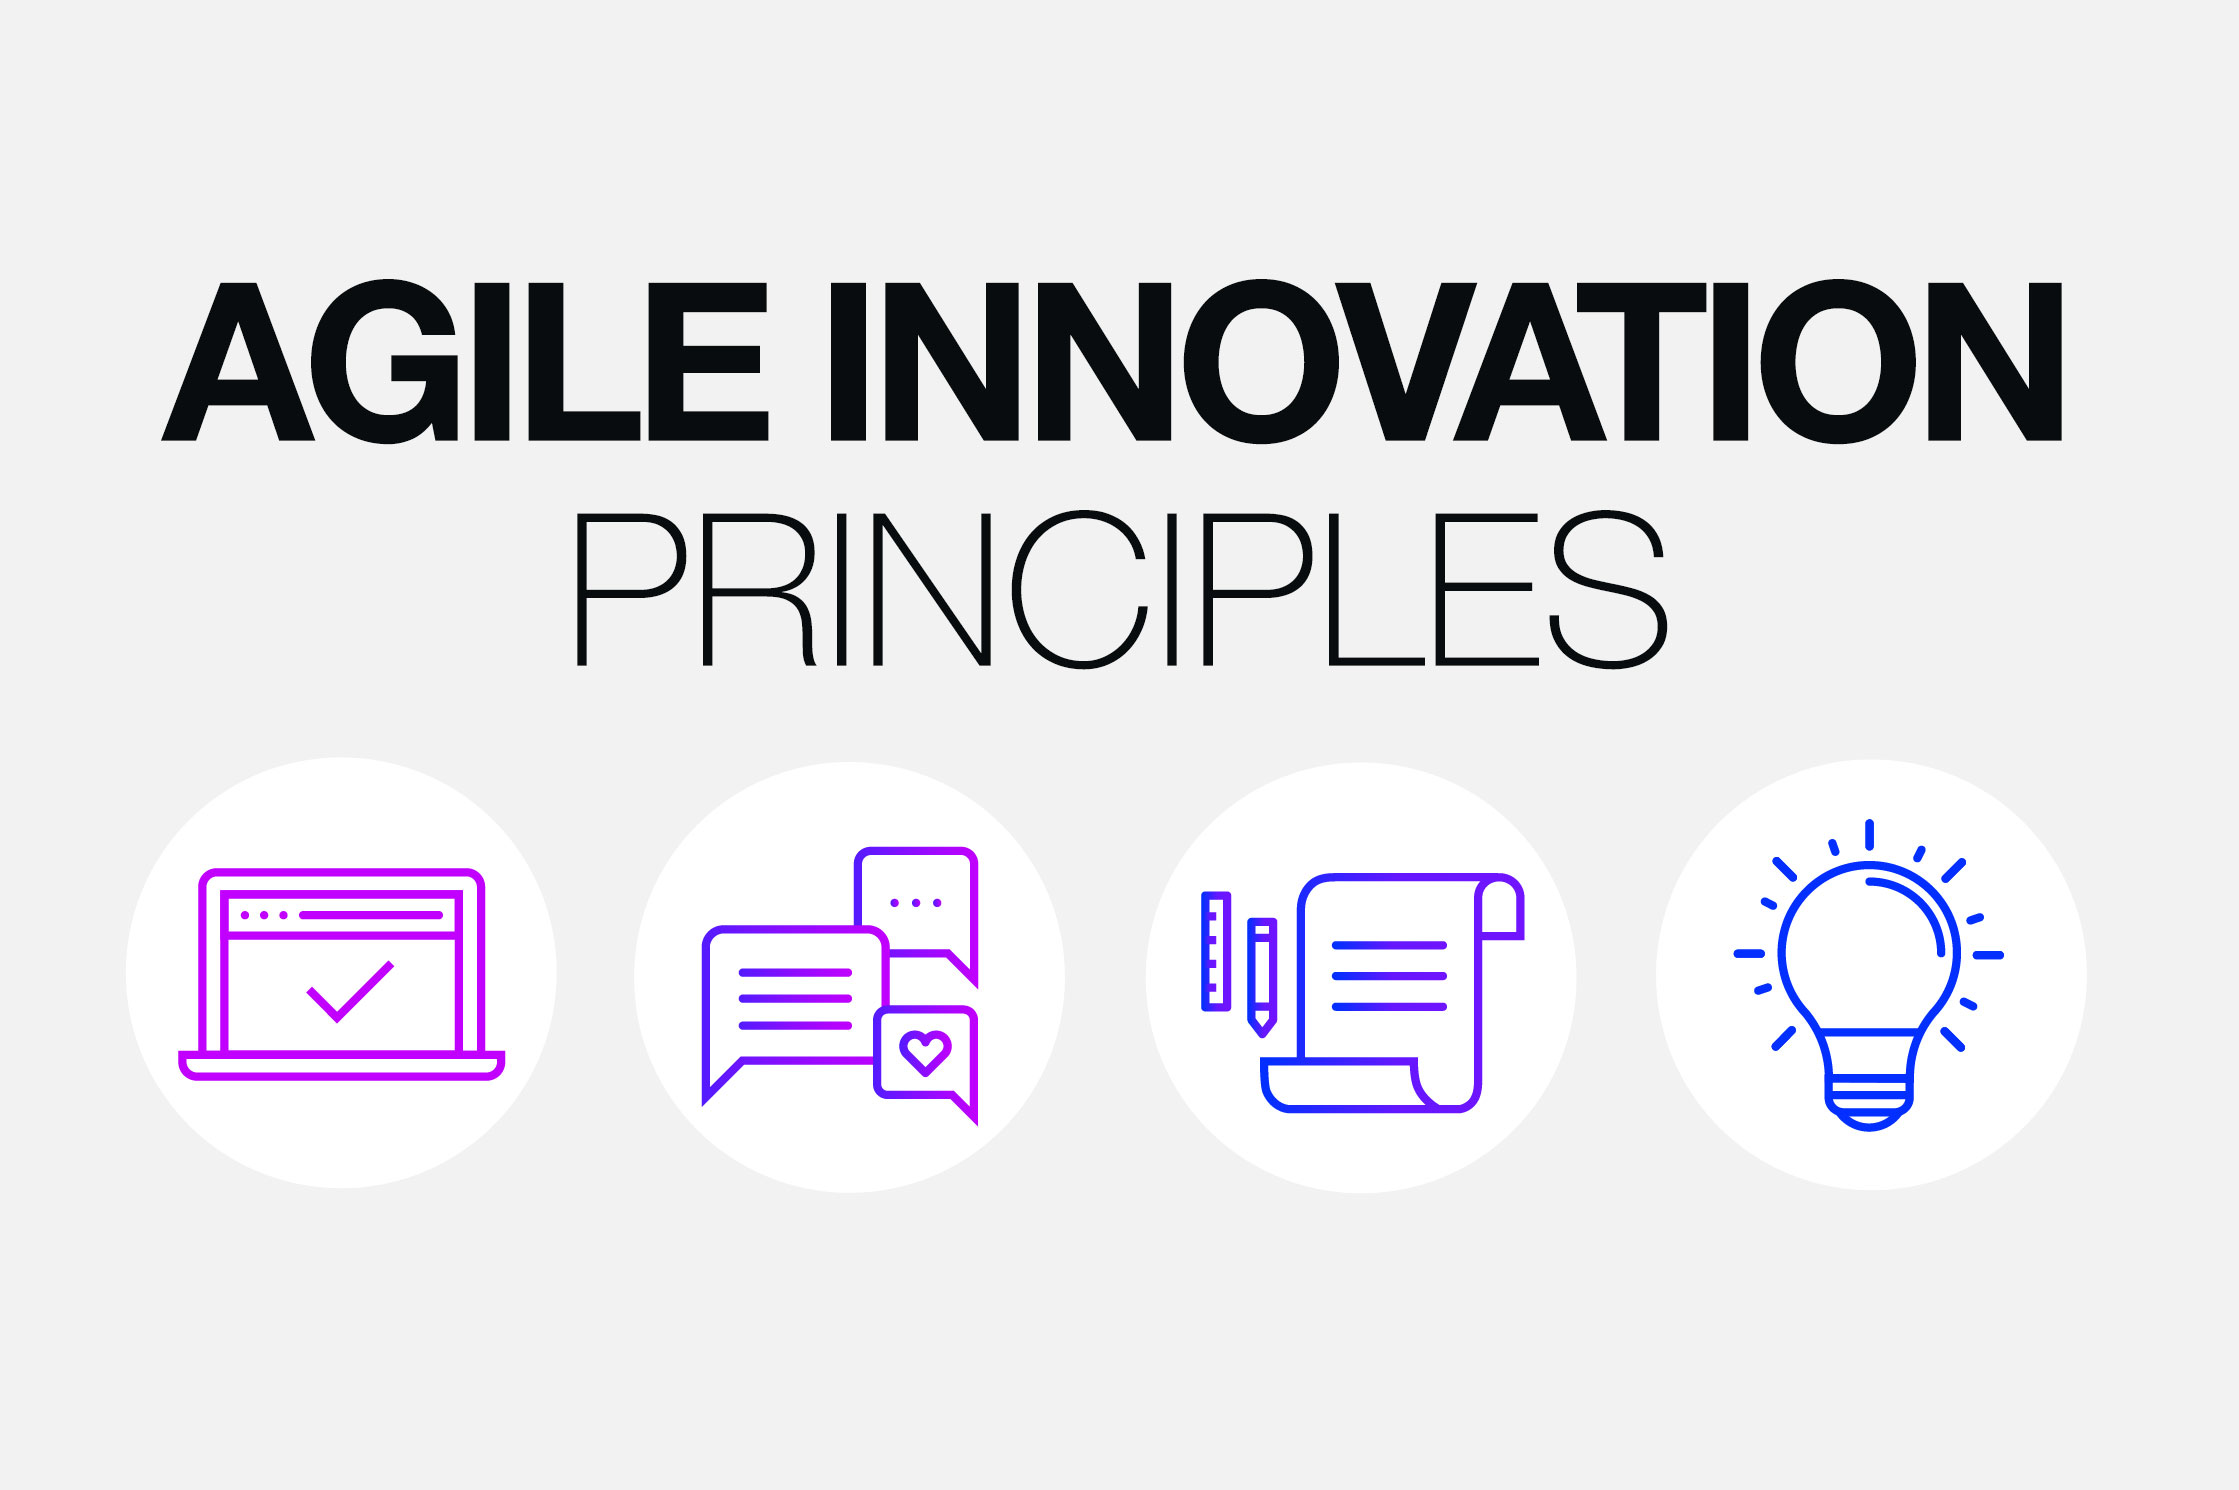 four principles of agile innovation